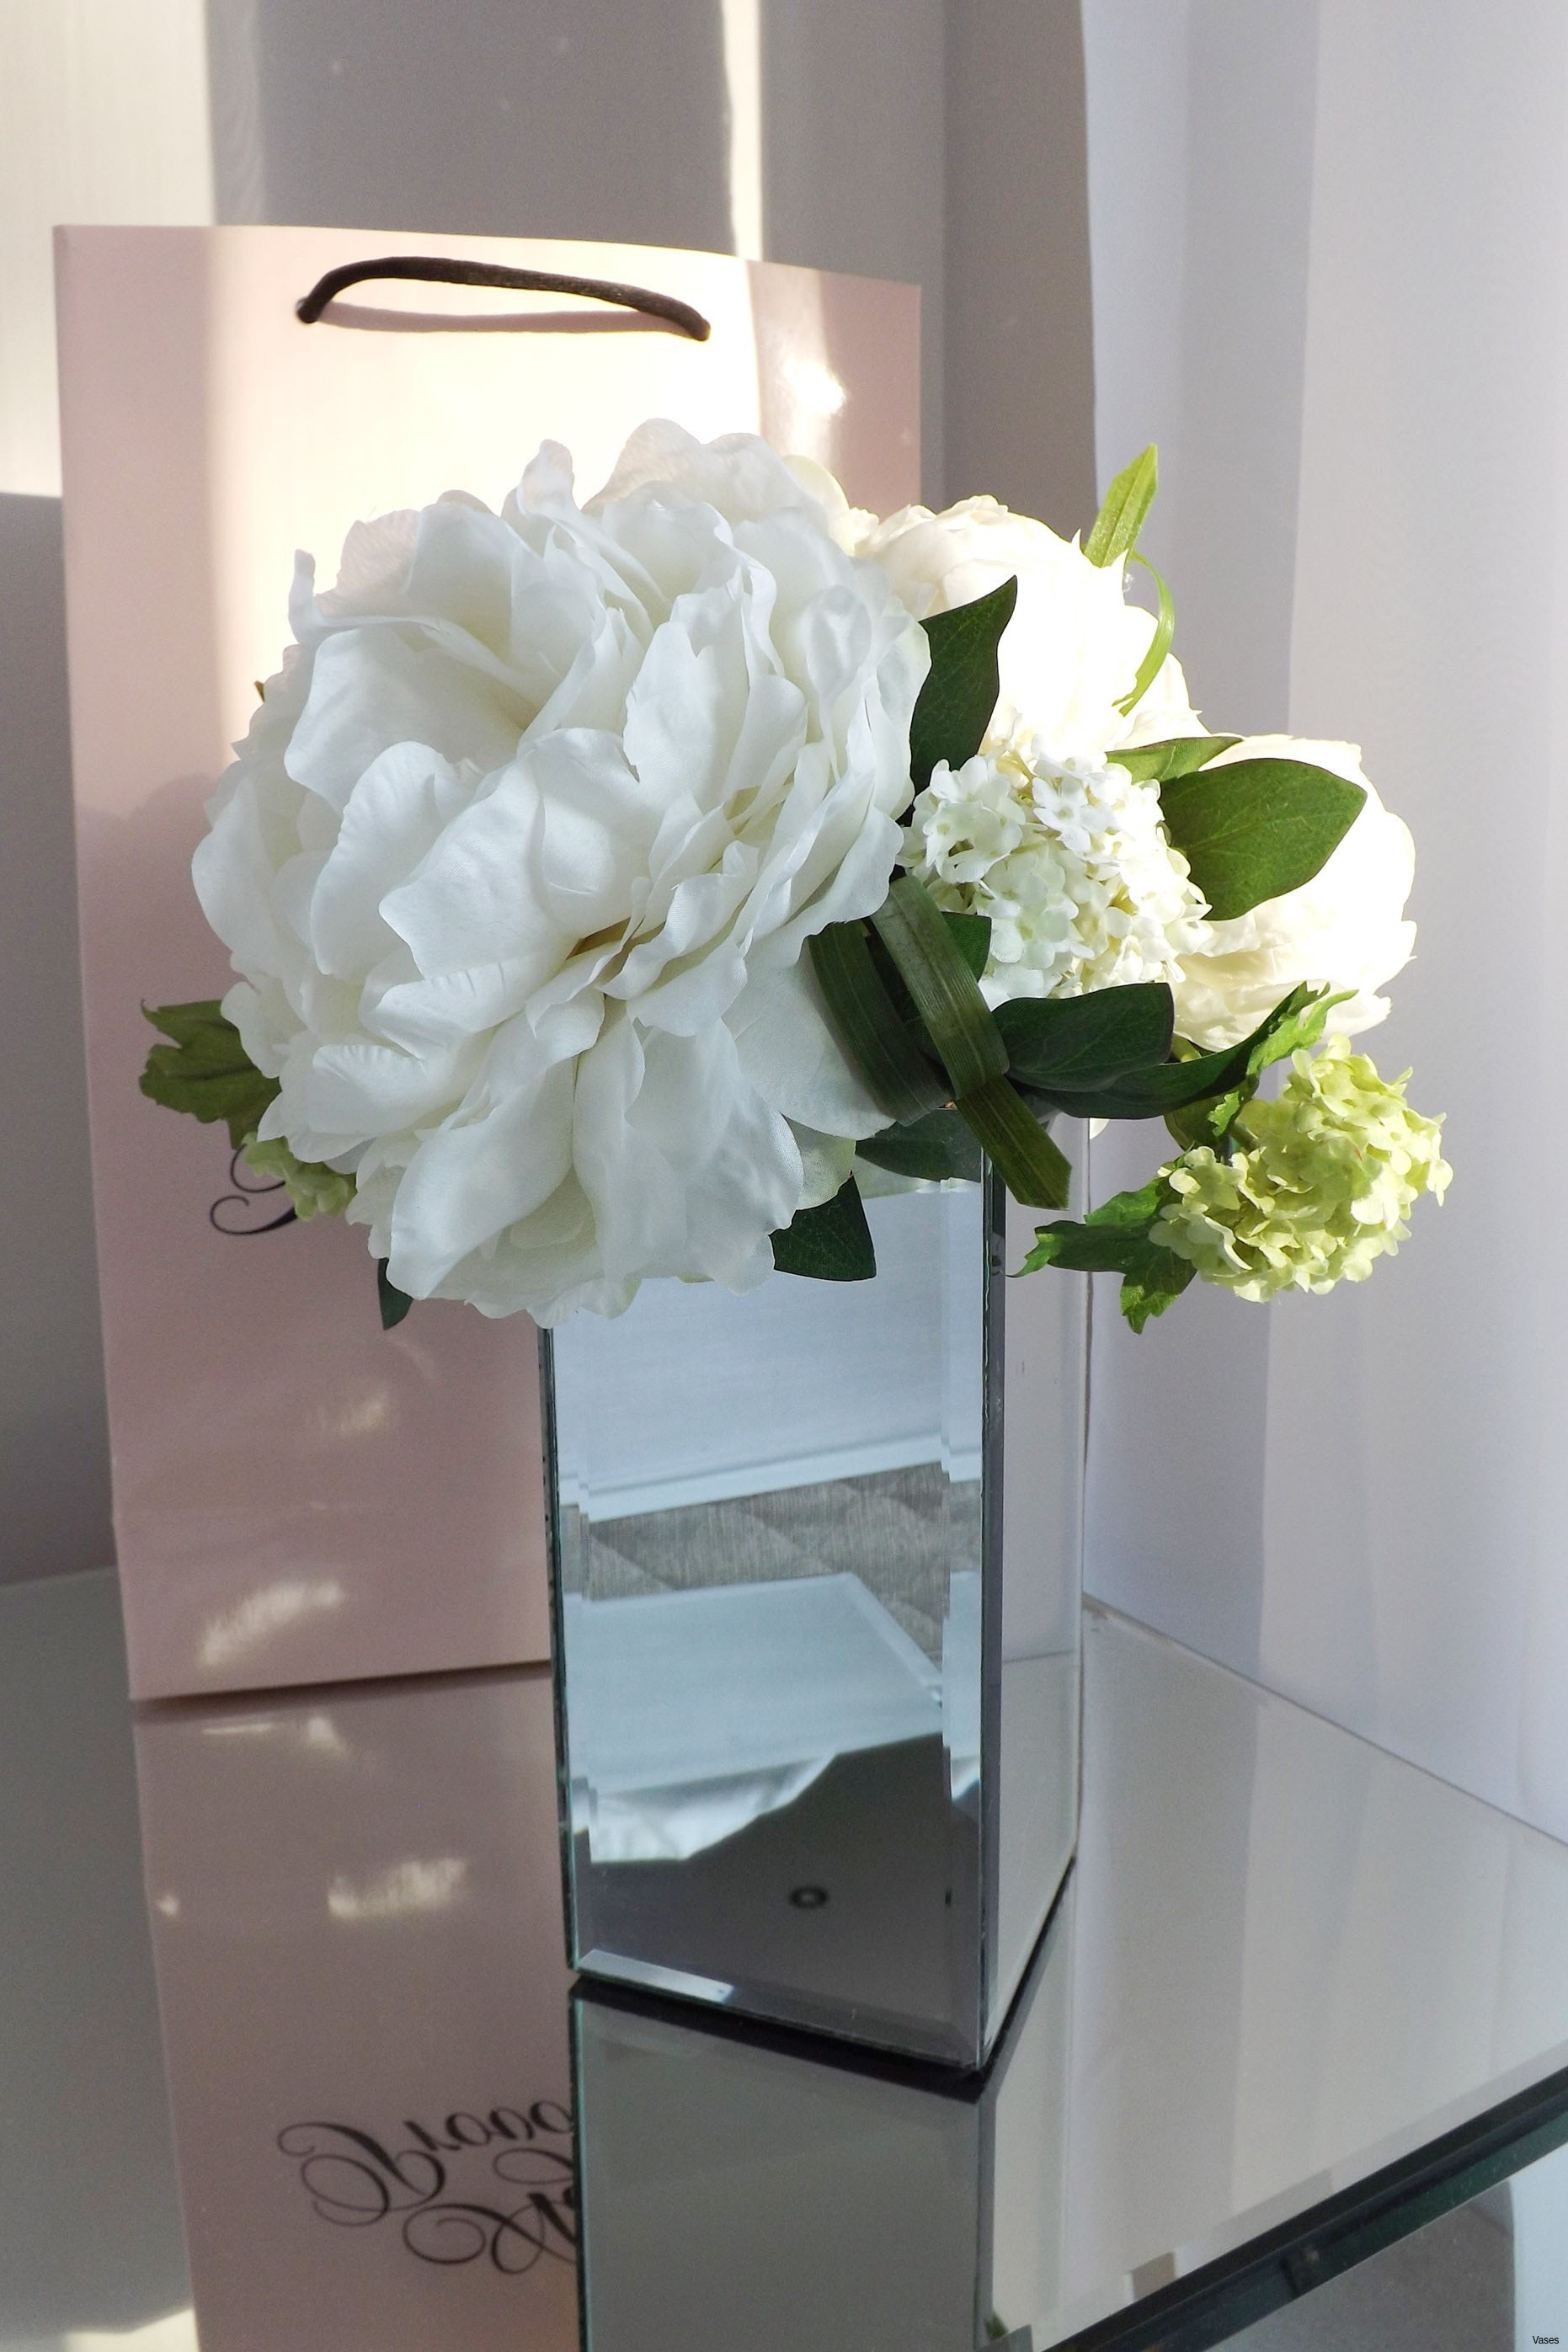 Tiffany Tulip Vase Of Vases Artificial Plants Collection Page 37 within Mosaic Mirror Vase Photograph Hobby Lobby Wedding Decorations Luxury Metal Vases 3h Mirrored Of Mosaic Mirror Vase